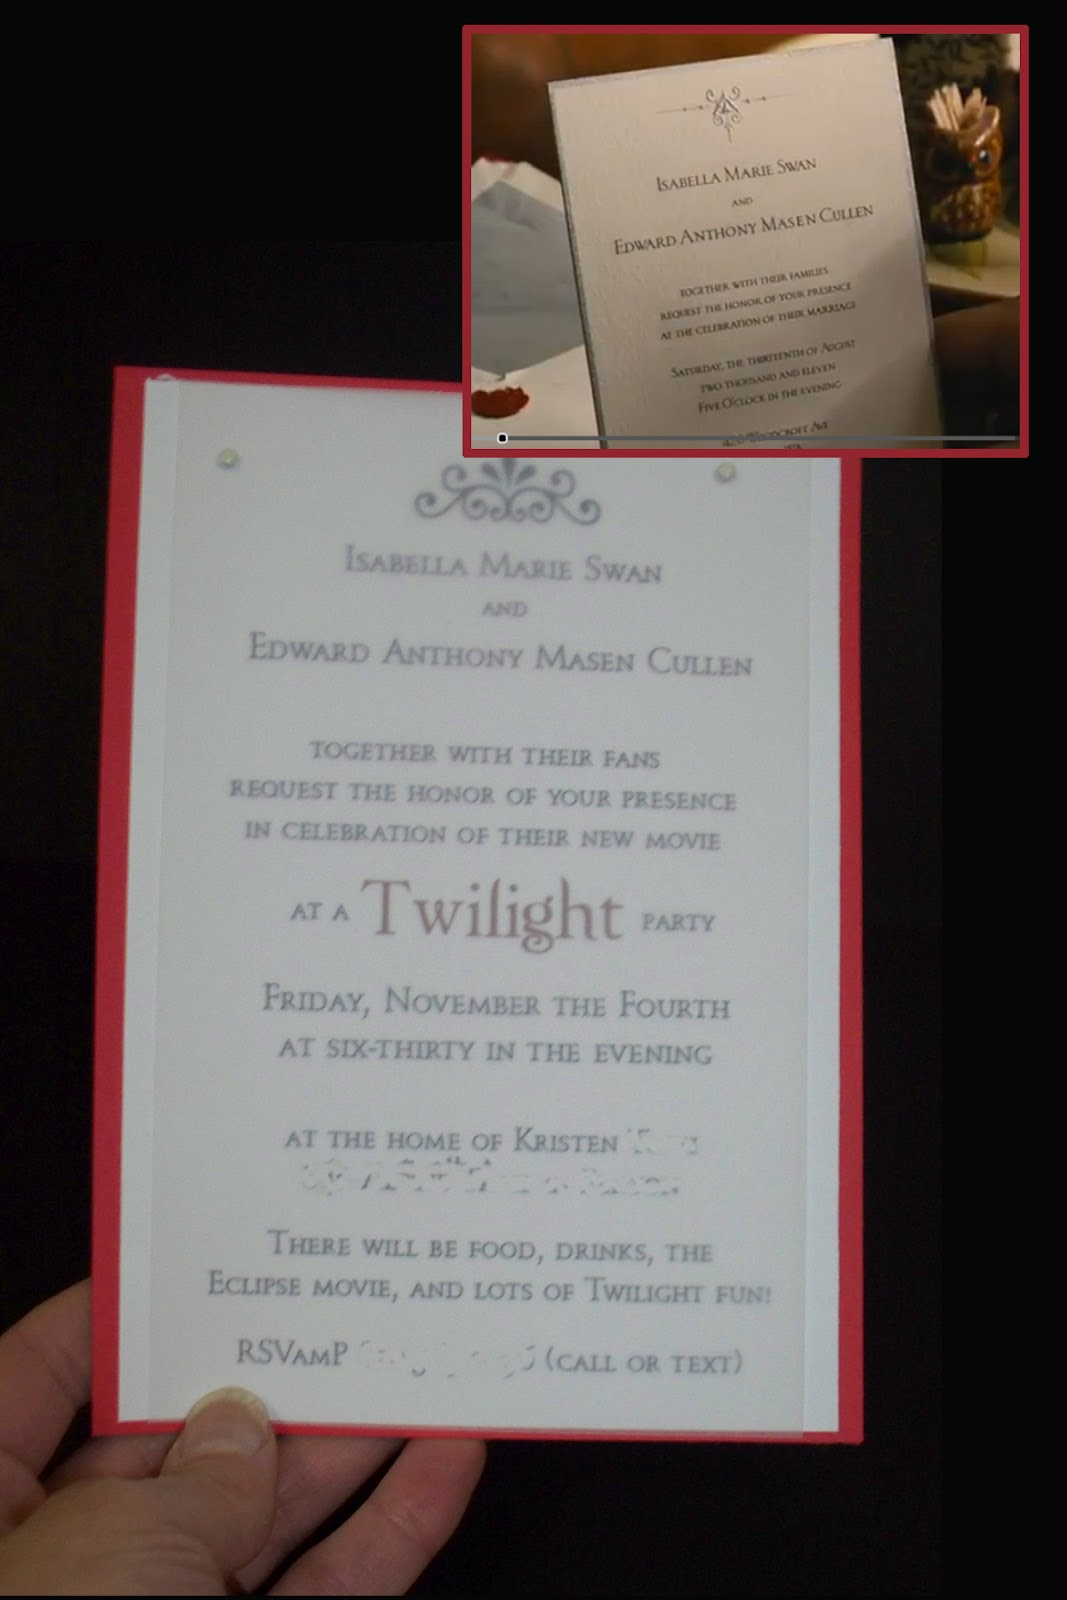 Make Do Celebrate The Twilight Saga Breaking Dawn Part 1 Video Release With A Viewing Party